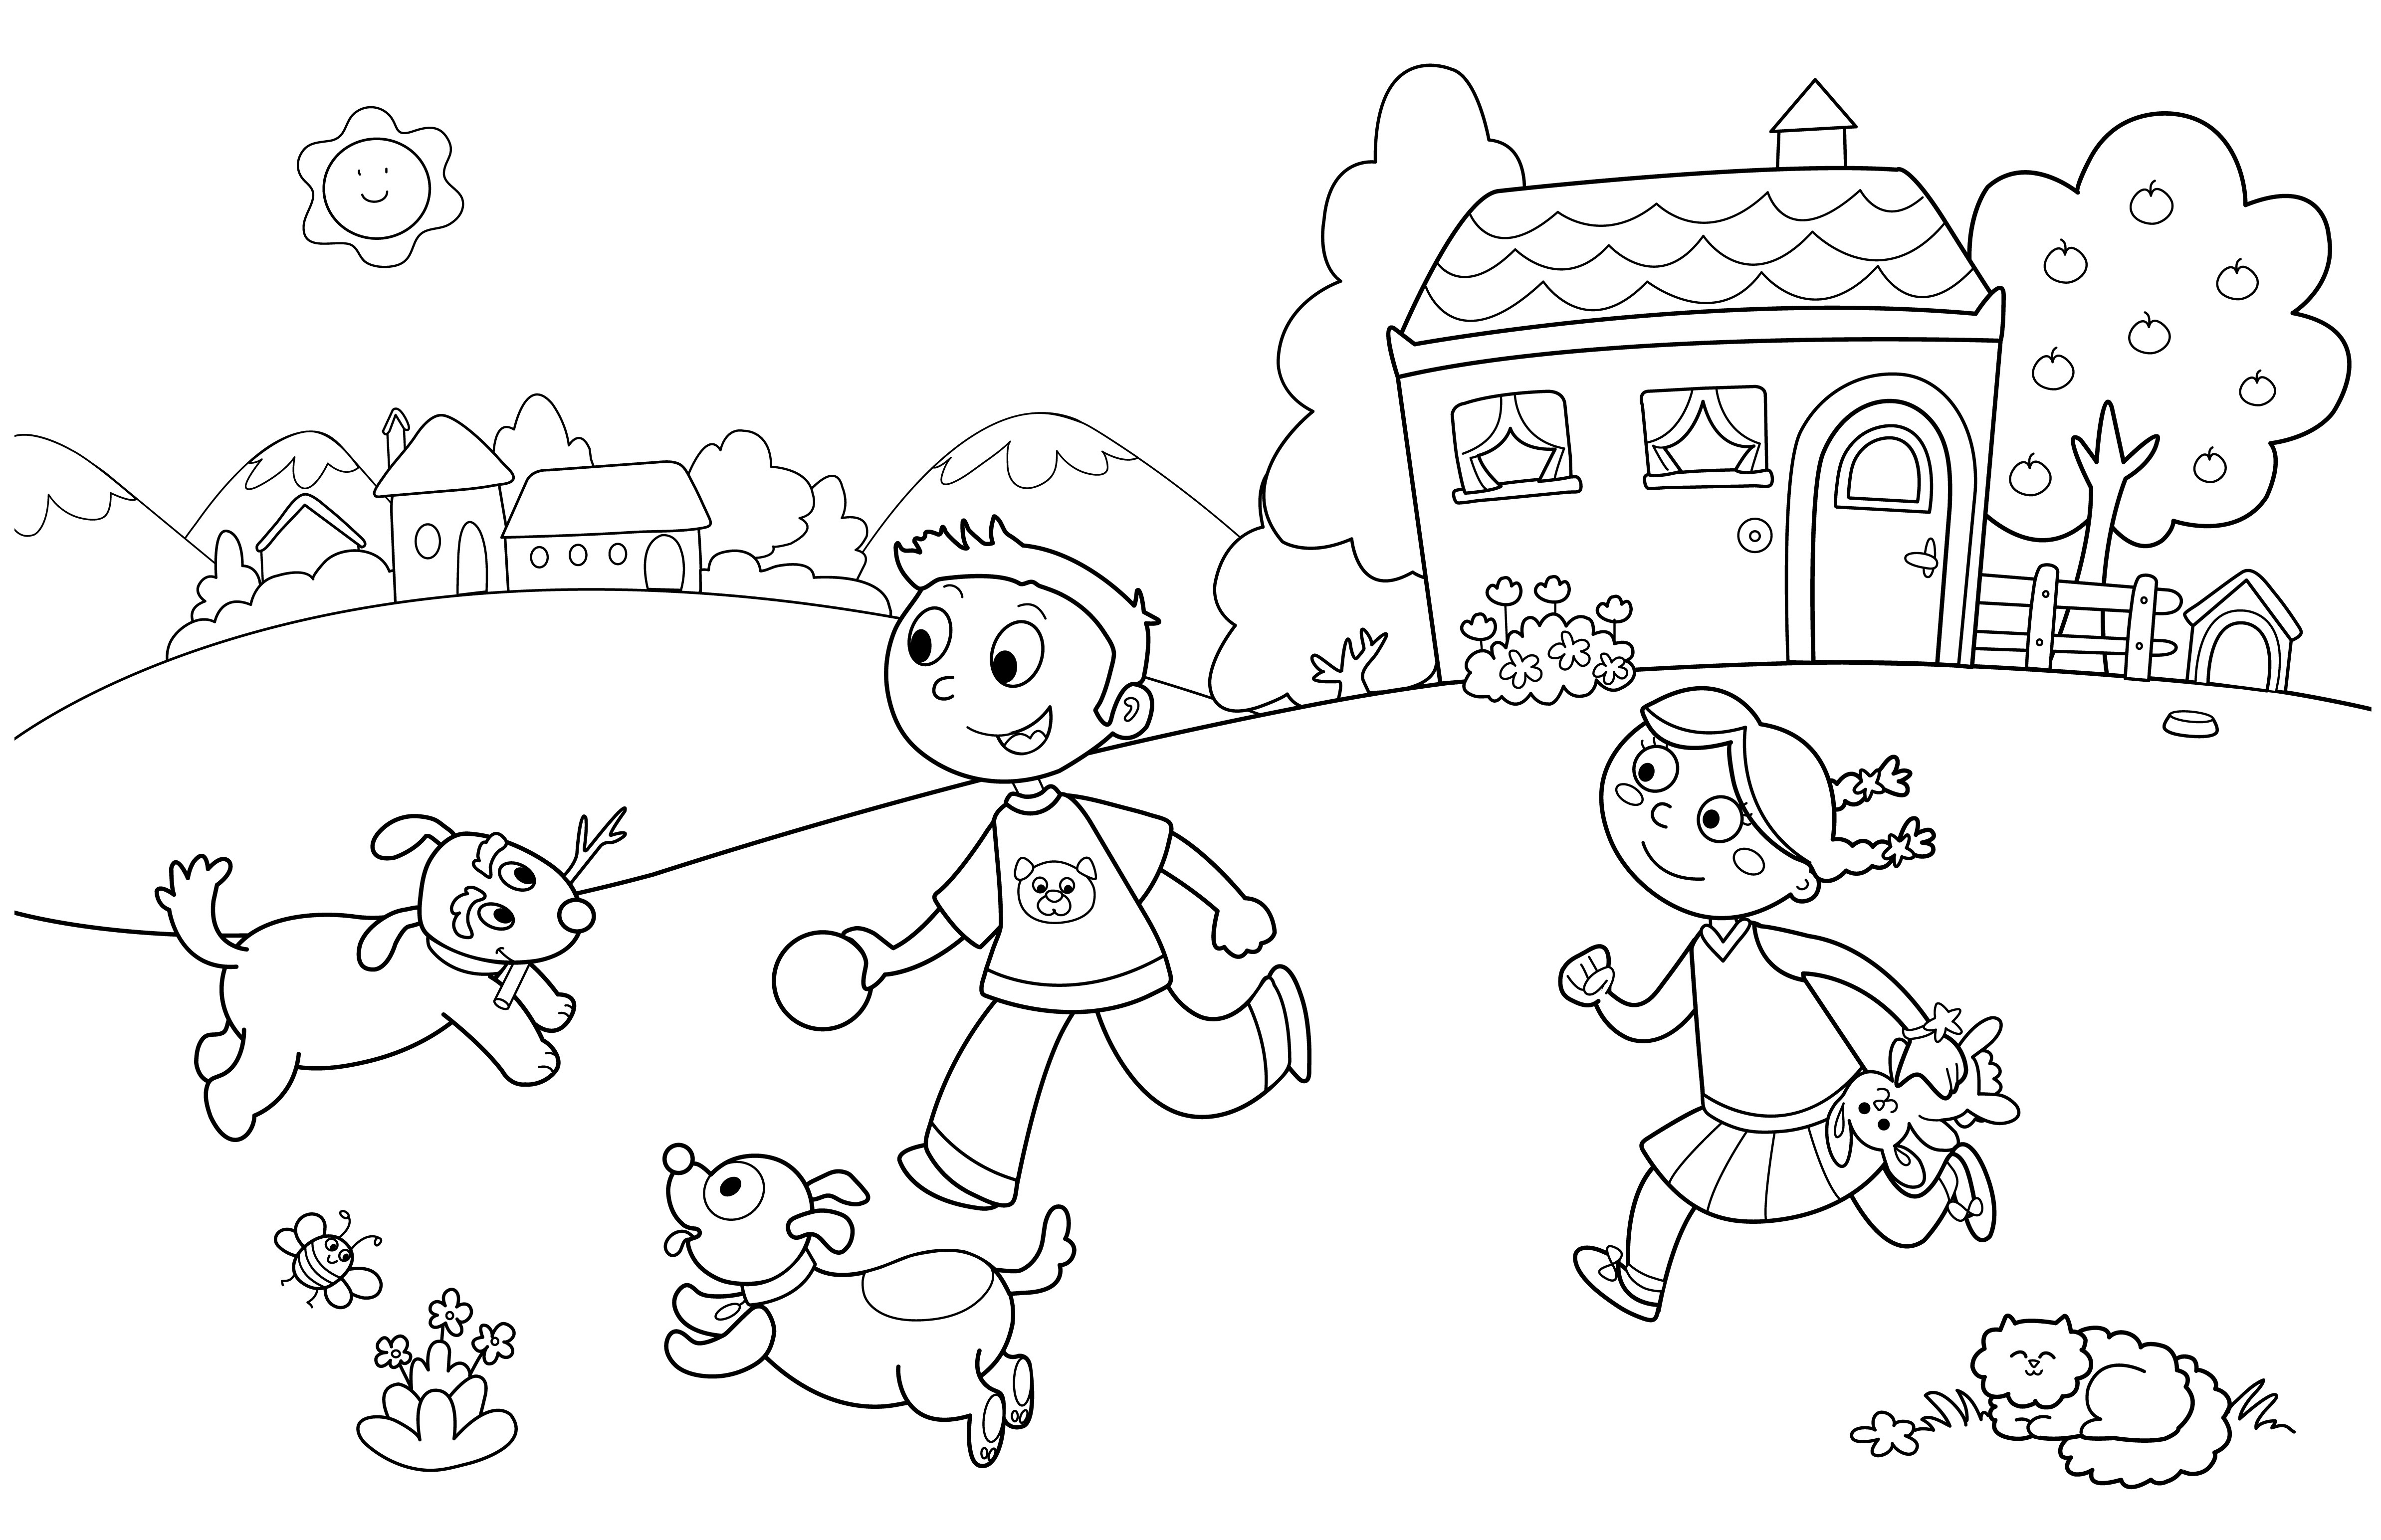 Coloring Pages Kids  Spring Coloring Pages Best Coloring Pages For Kids